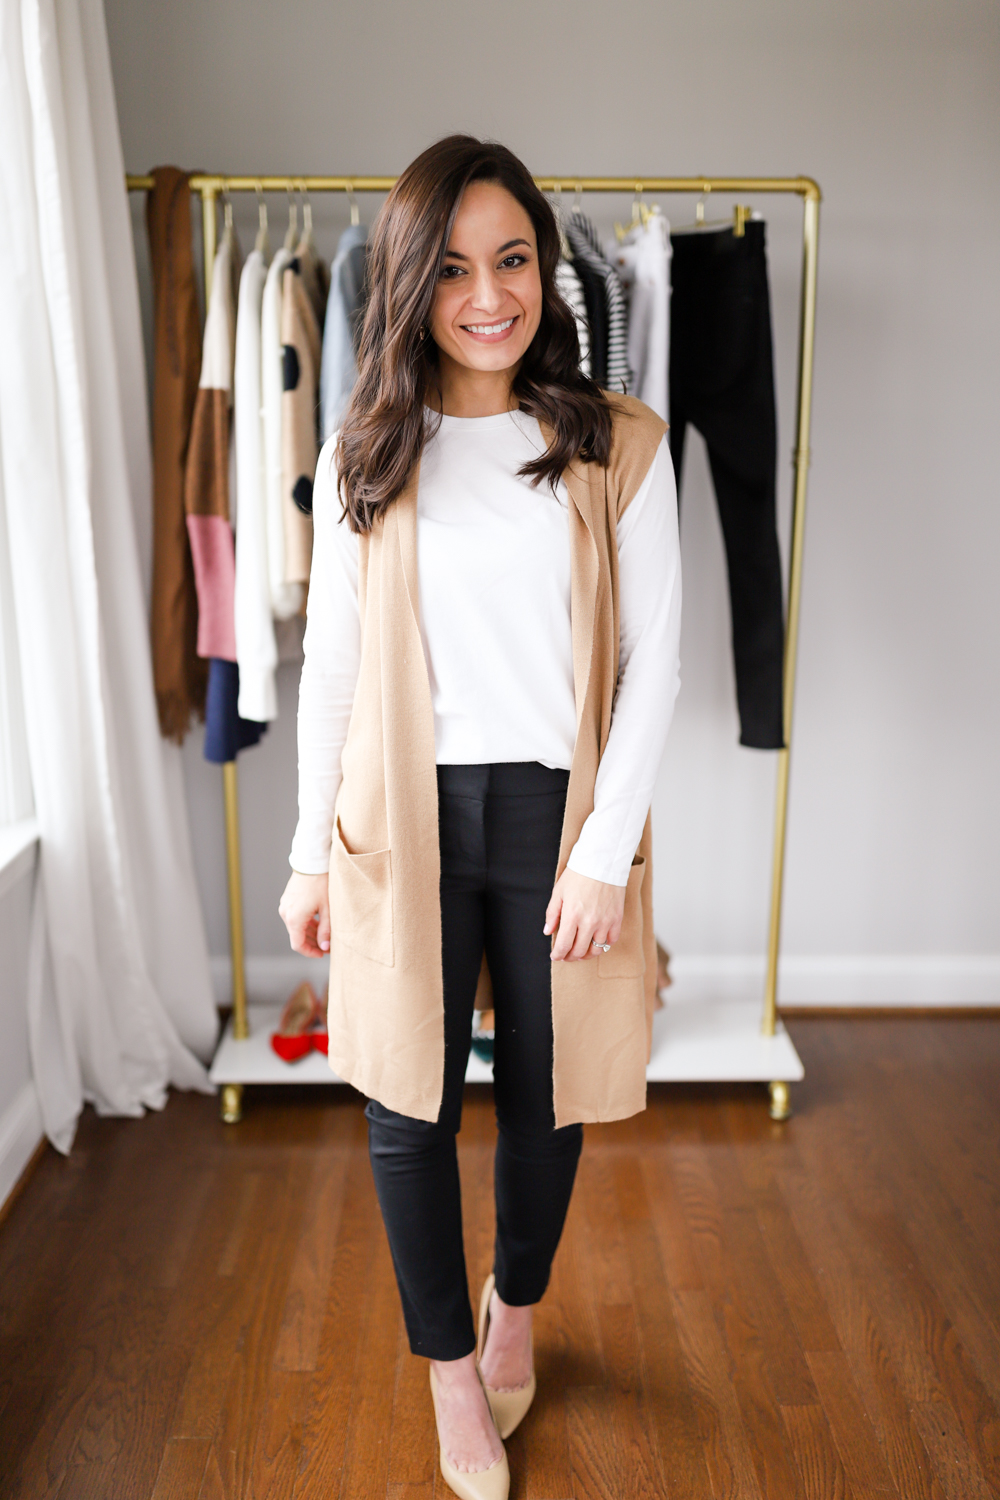 Neutral outfit for work via petite style blog Pumps and Push-Ups | petite style blog | four neutral outfits for work